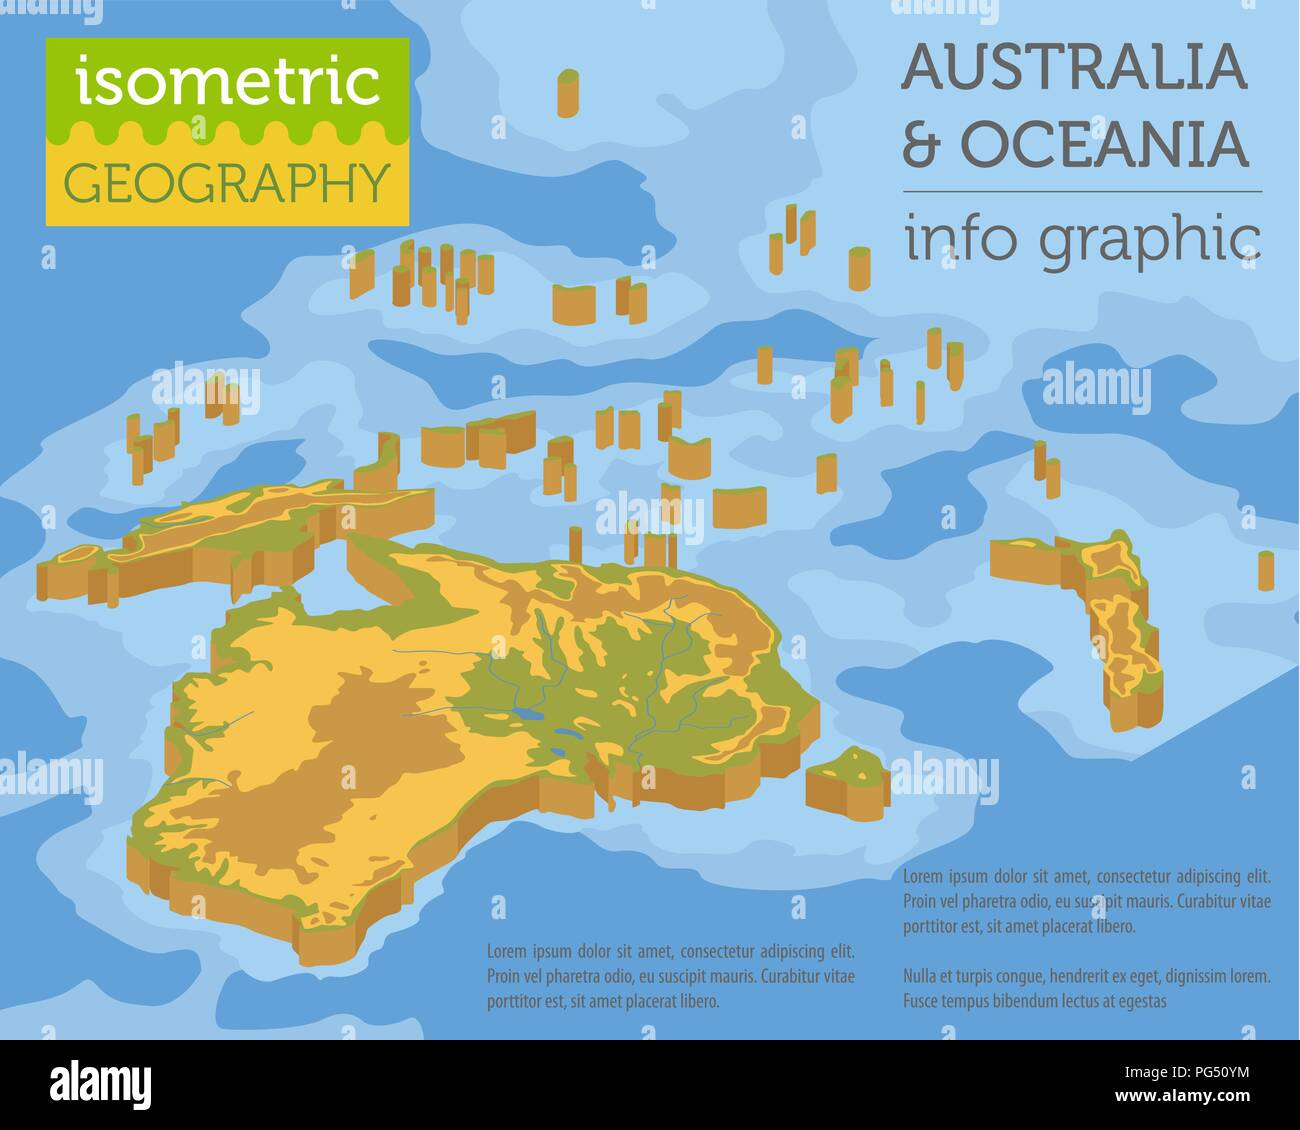 Isometric 3d Australia and Oceania physical map elements ...